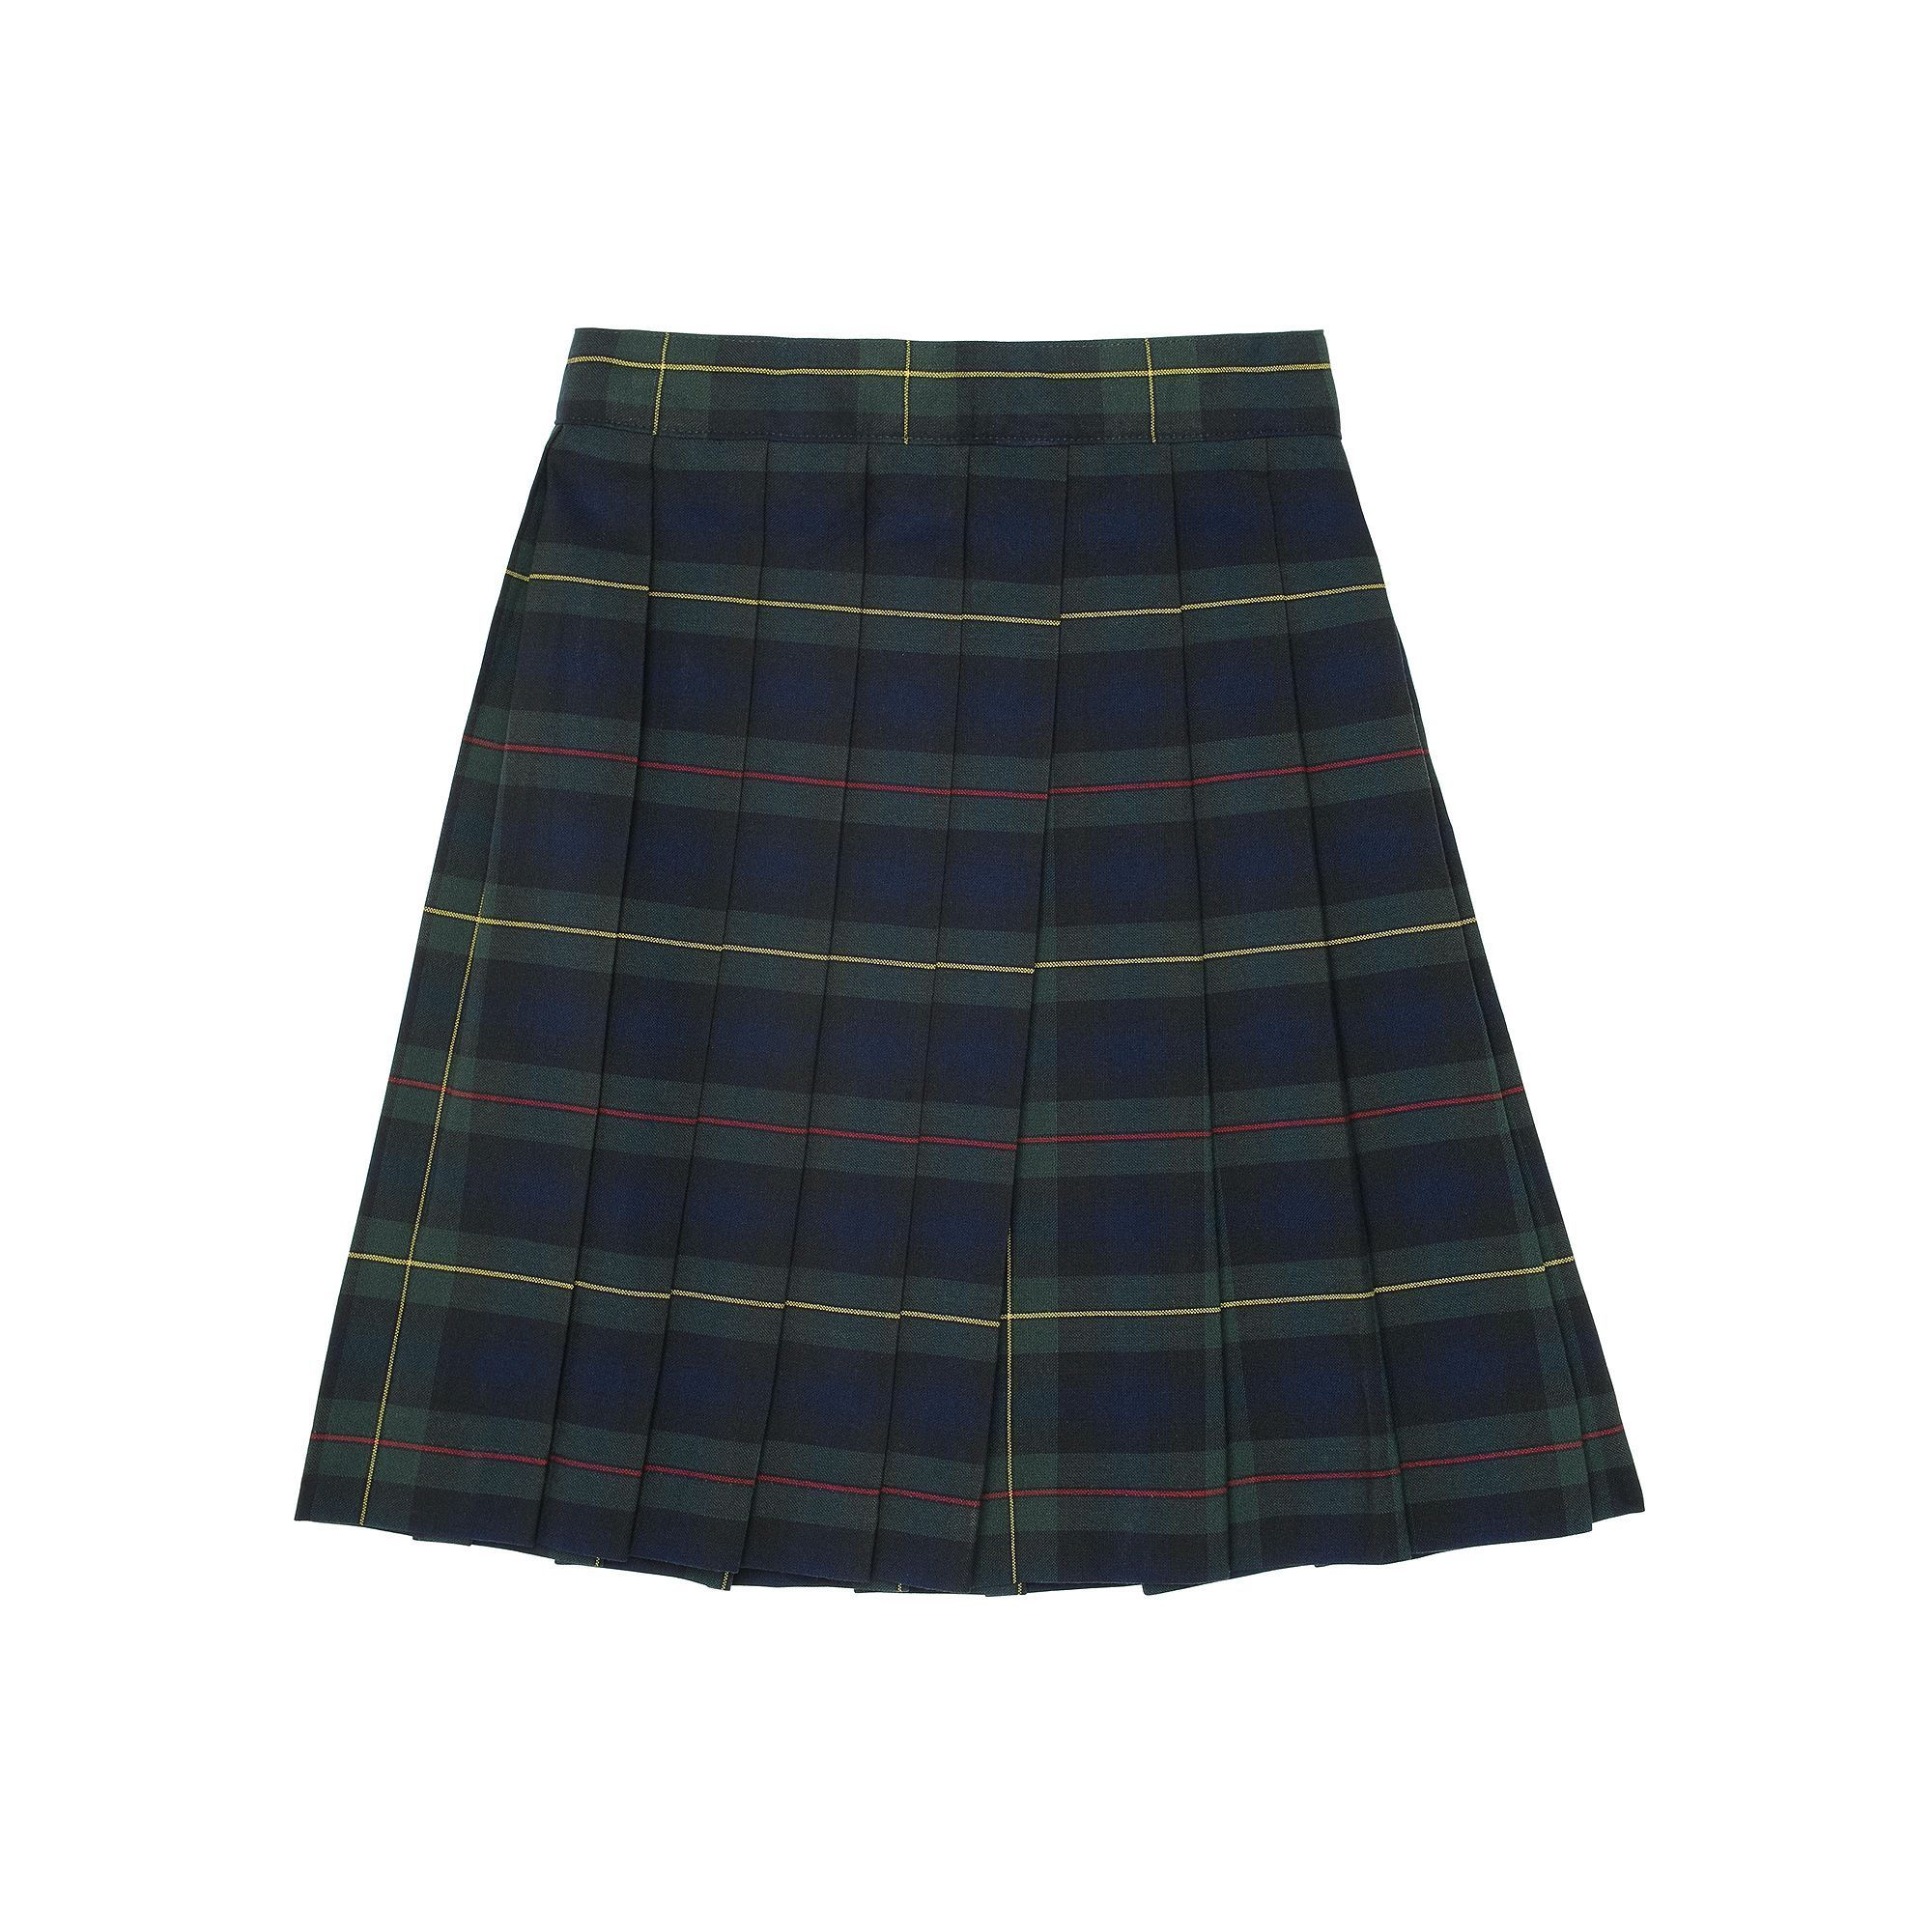 3f8c577974 Girls 4-20 & Plus Size French Toast School Uniform Plaid Pleated Skirt,  Girl's, Size: 12 Plus, Green Oth